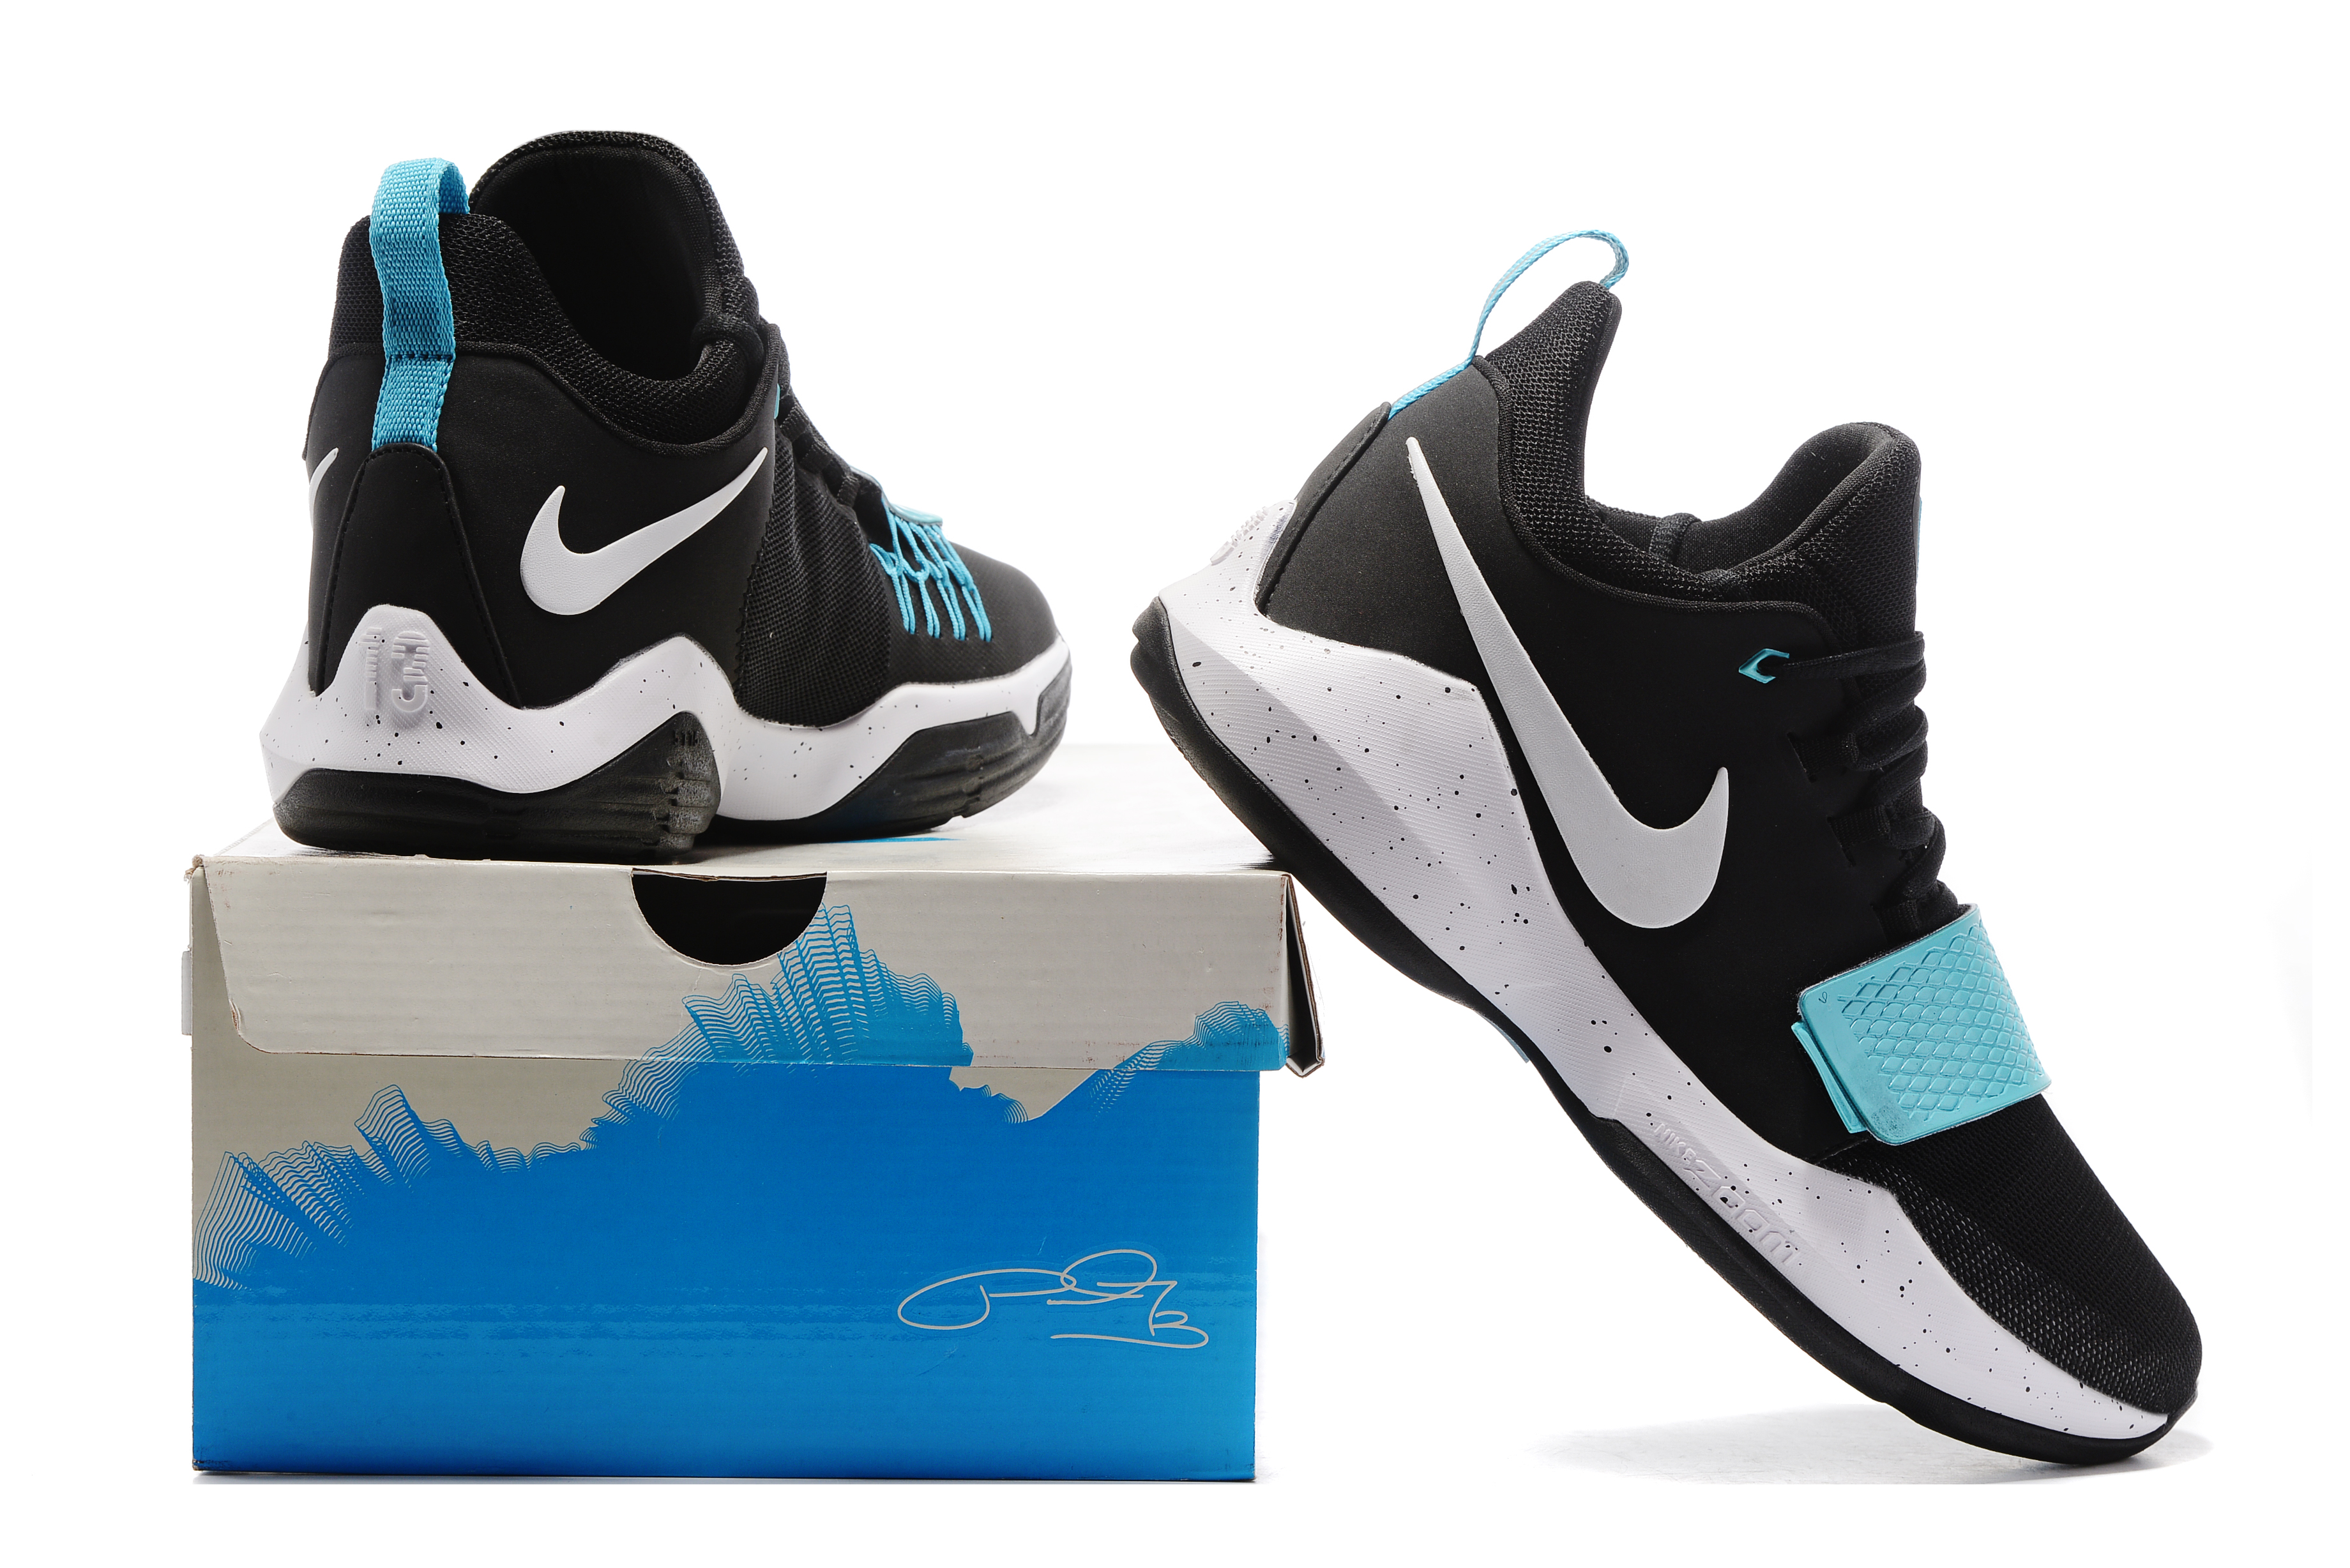 Paul George 1 Black Jade Shoes On Sale